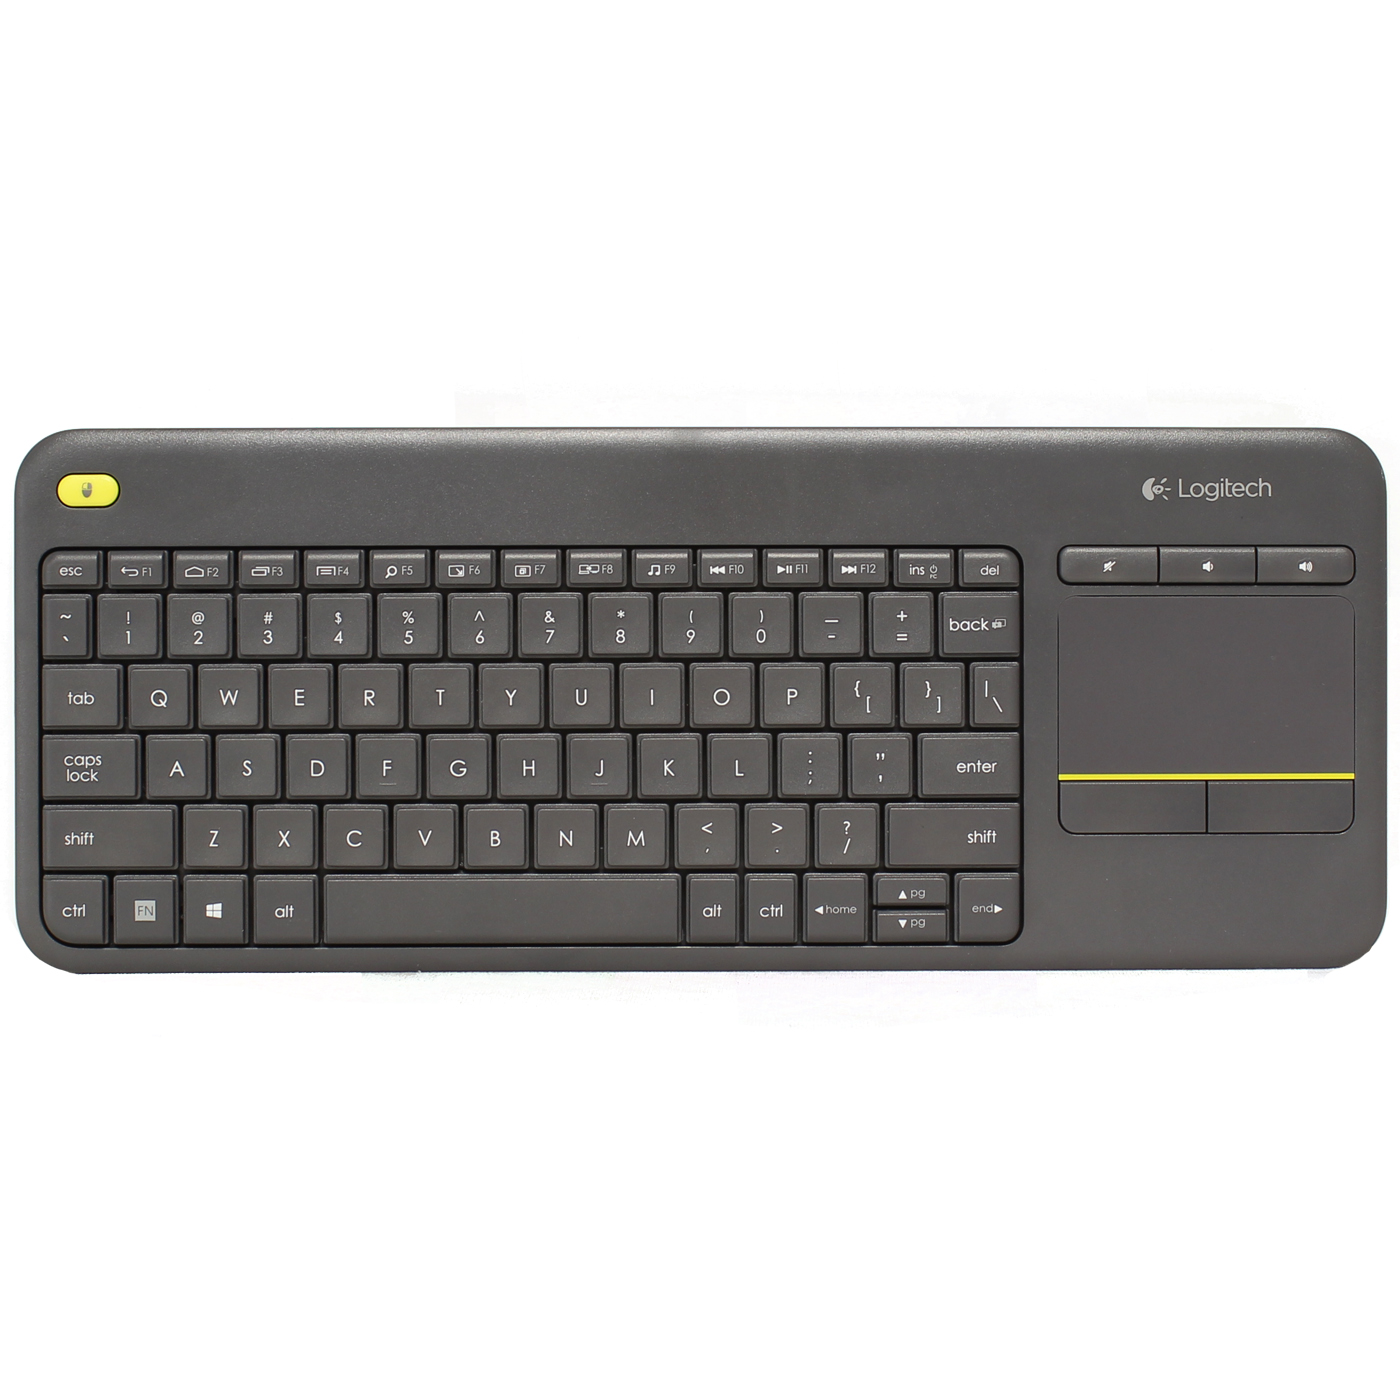 Logitech K400 Plus Wireless Touch Keyboard bfc699deb2efc